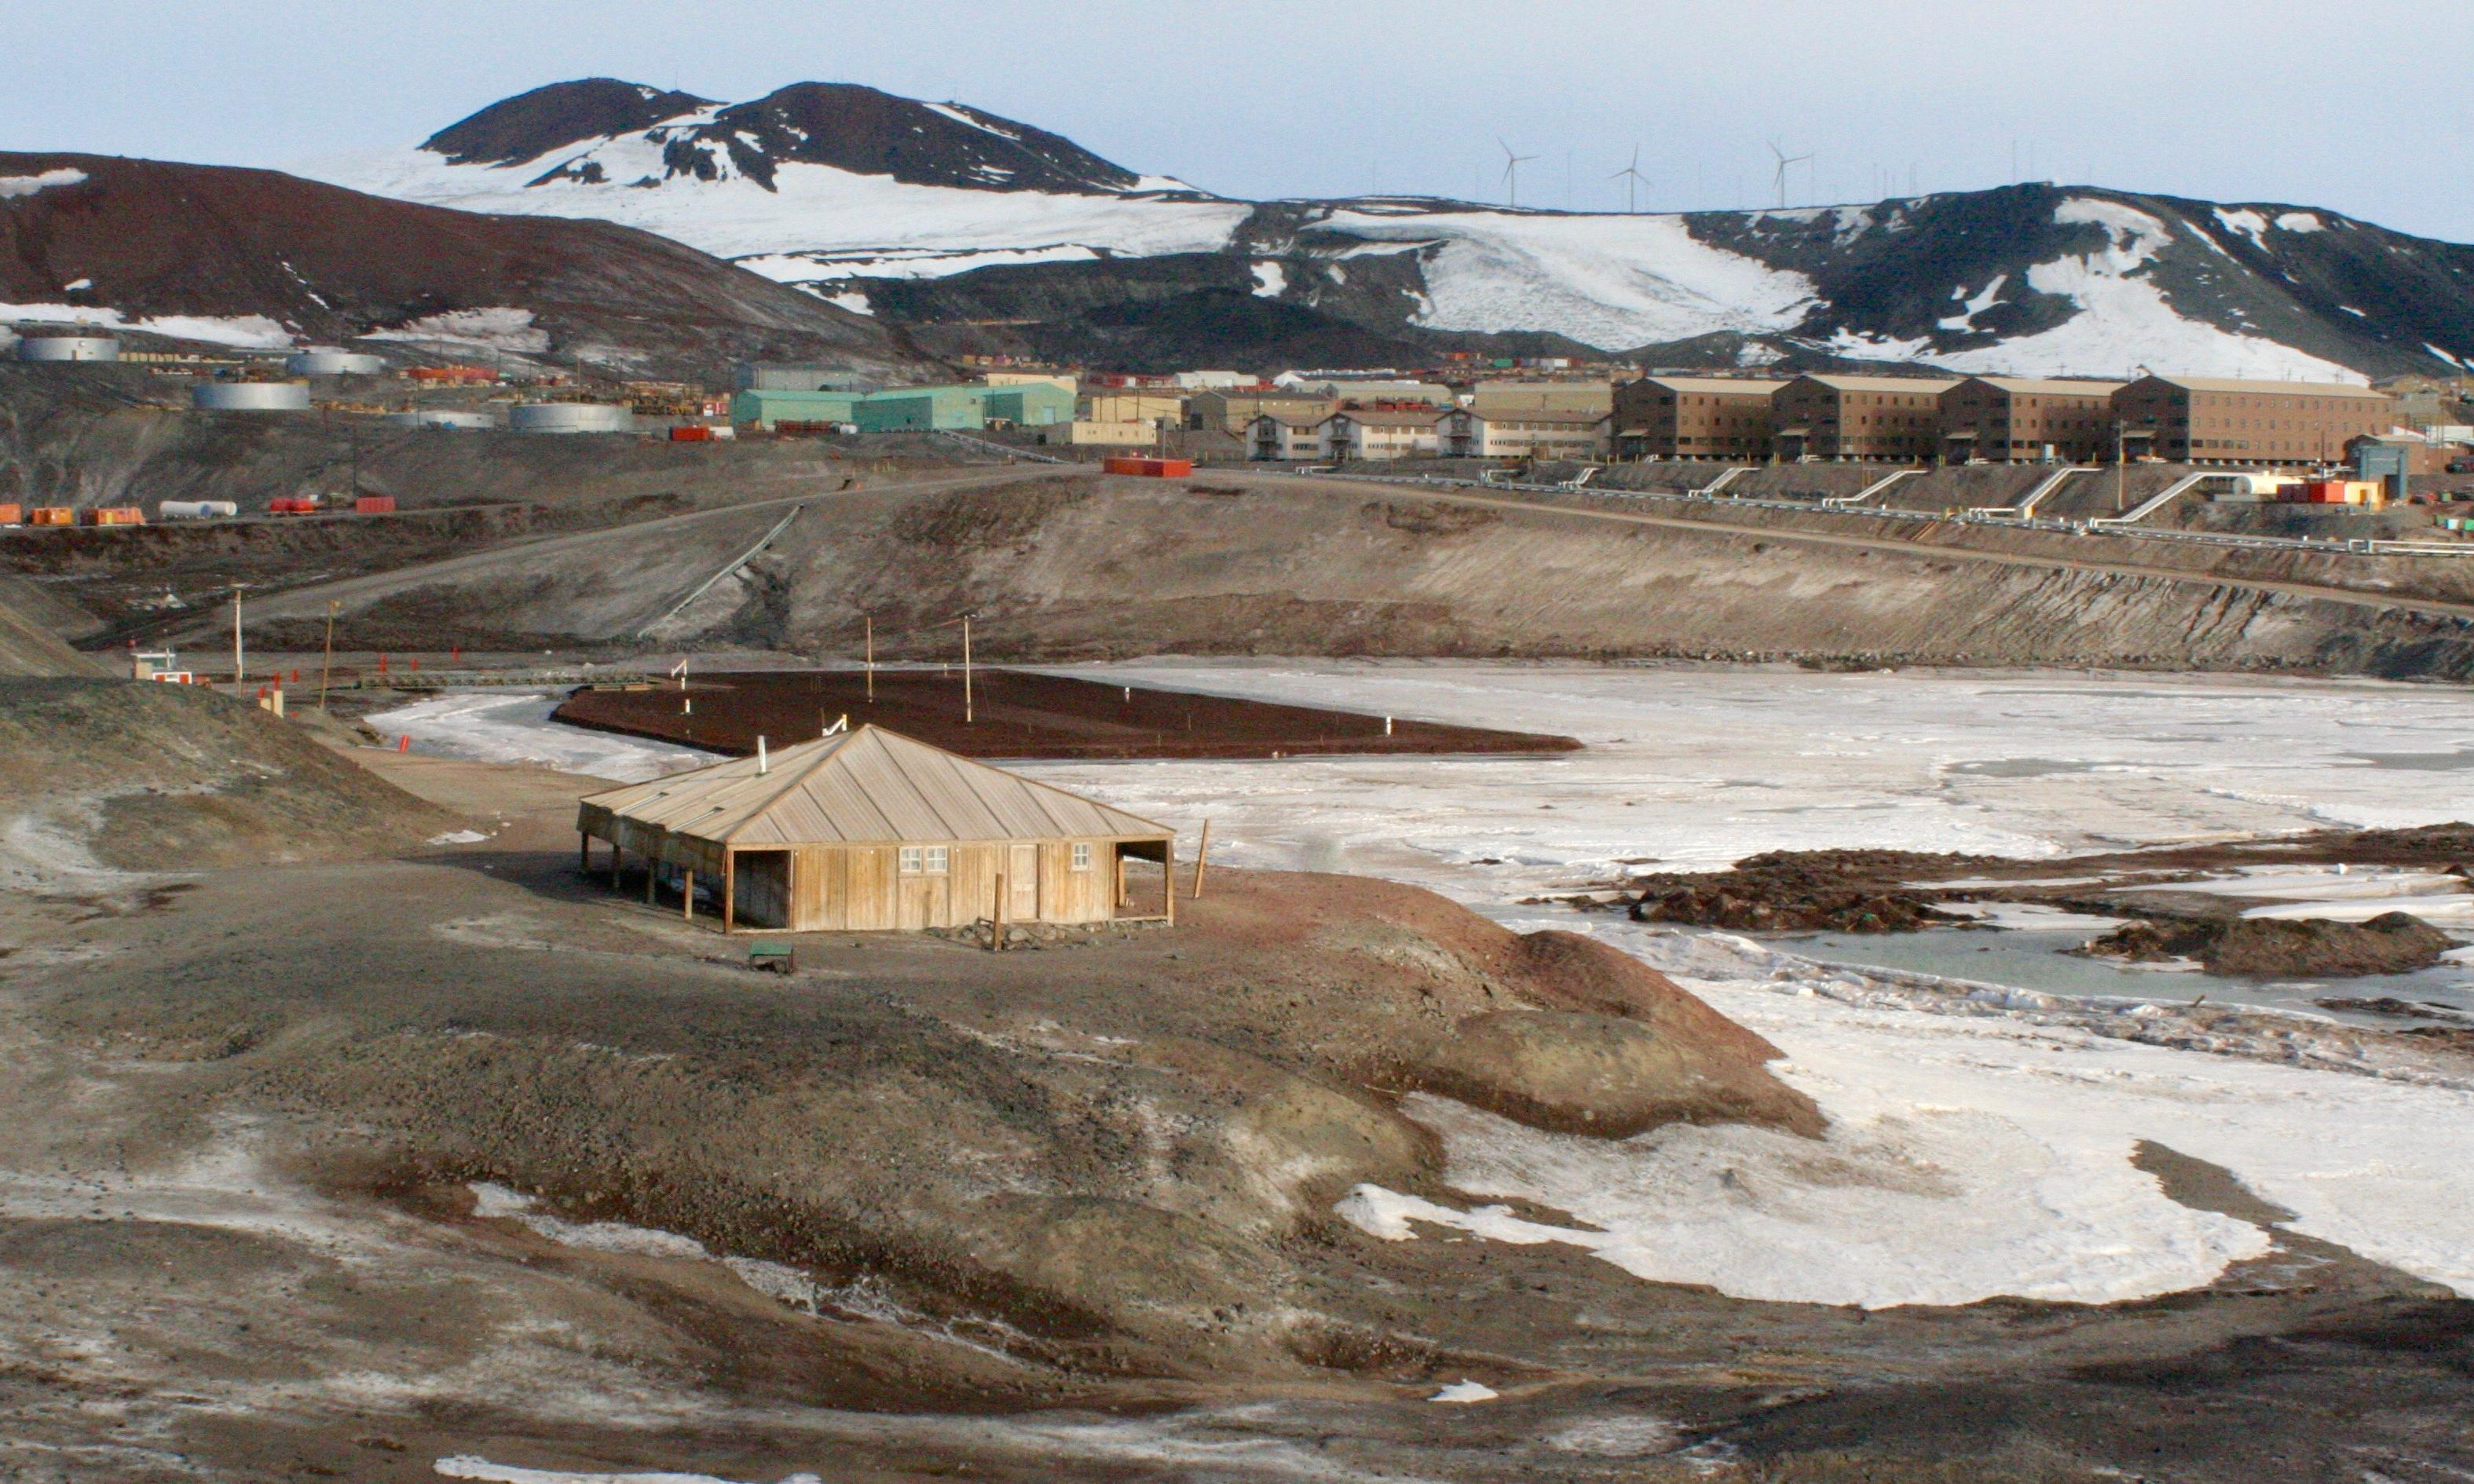 Antarctica deaths: no foul play suspected in deaths at McMurdo station